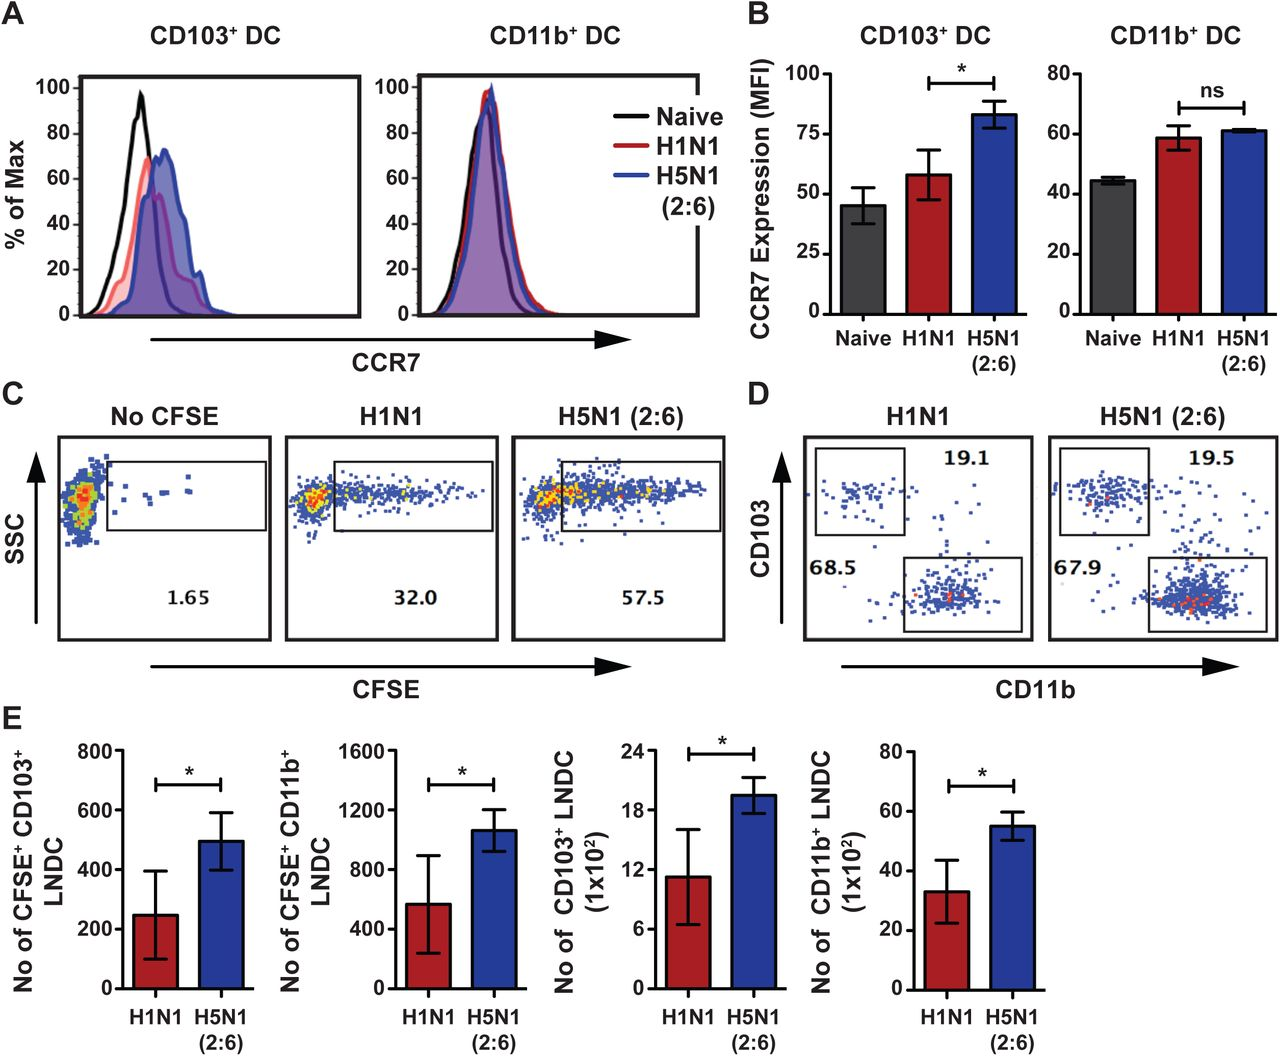 H5N1 (2:6) infection induces higher upregulation of CCR7 and migration of lung DC. C57BL/6 mice (n=3-4 per group) were intranasally infected with 100 PFU of H1N1 or H5N1 (2:6) and lung DC activation and migration was analyzed by flow cytometry. (A) Representative histogram comparing the expression of CCR7 on CD103+ DC or CD11b+ DC subsets on day 2 pi. (B) Quantification for panel A. CCR7 expression levels are shown as MFI. (C-D) C57BL/6 mice were infected with 100 PFU of H5N1 (2:6) or H1N1 and instilled with 50μl of 8mM CFSE at day 2pi. After 16h, the number of CFSE+ migratory DC present in the MLN was analyzed by flow cytometry. (C) Representative FACS plots showing CFSE+ population in the MLN. (D) Relative levels of CFSE positive CD103+ and CD11b+ DC in the MLN. (E) Bar charts showing the number of CFSE+ DC subsets in the MLN. (F) Bar chart showing total numbers of DC subsets in the MLN. The values are expressed as mean ± SD. * denotes statistical significance of